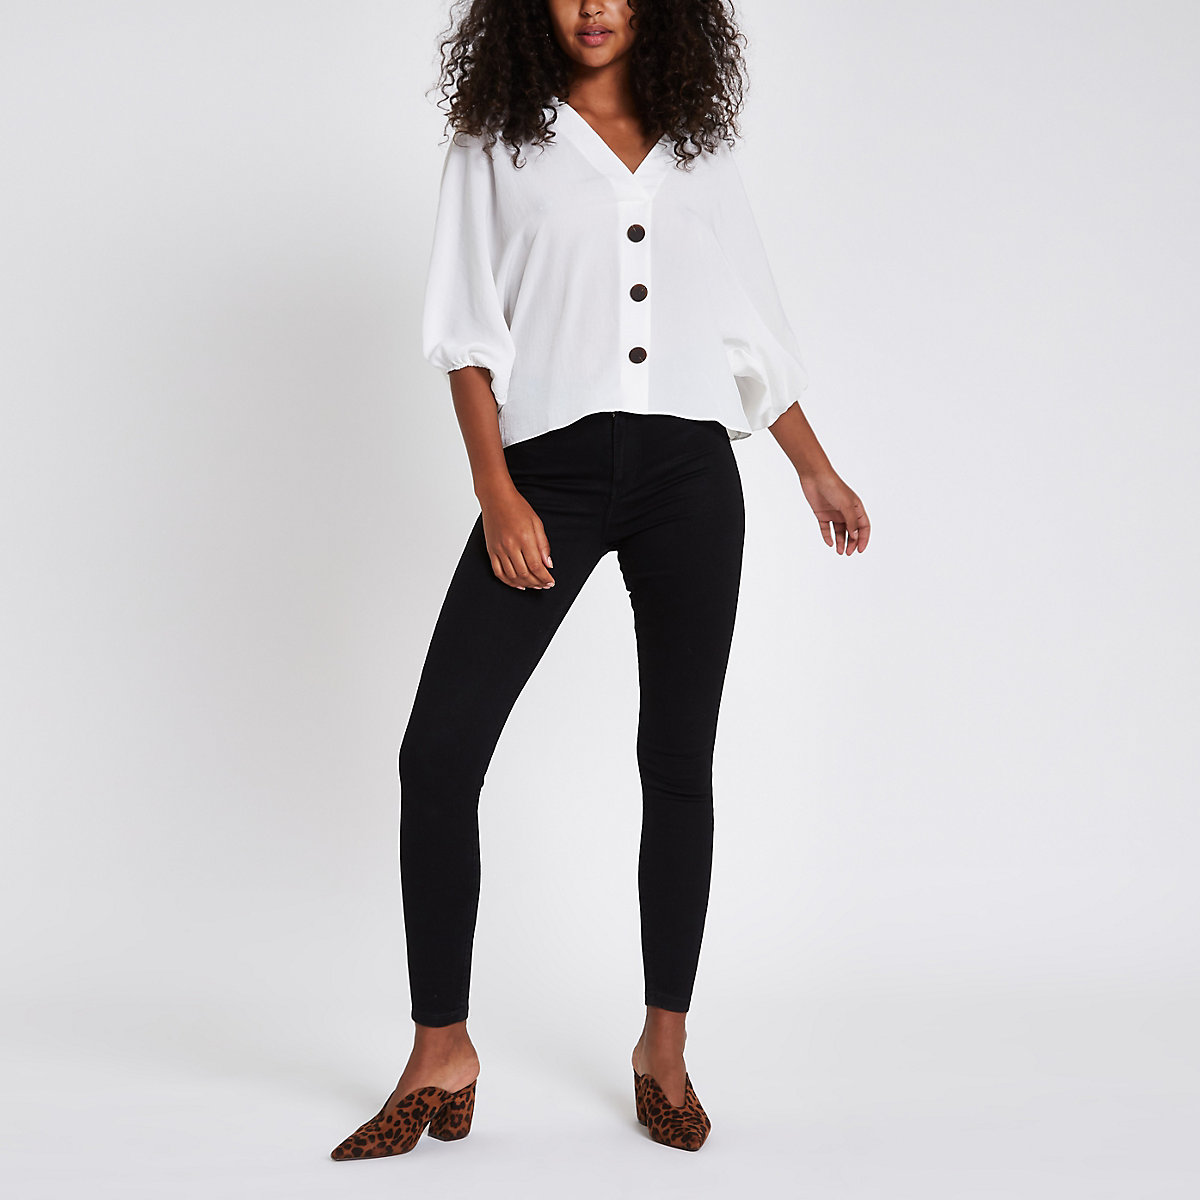 White loose fit button up blouse